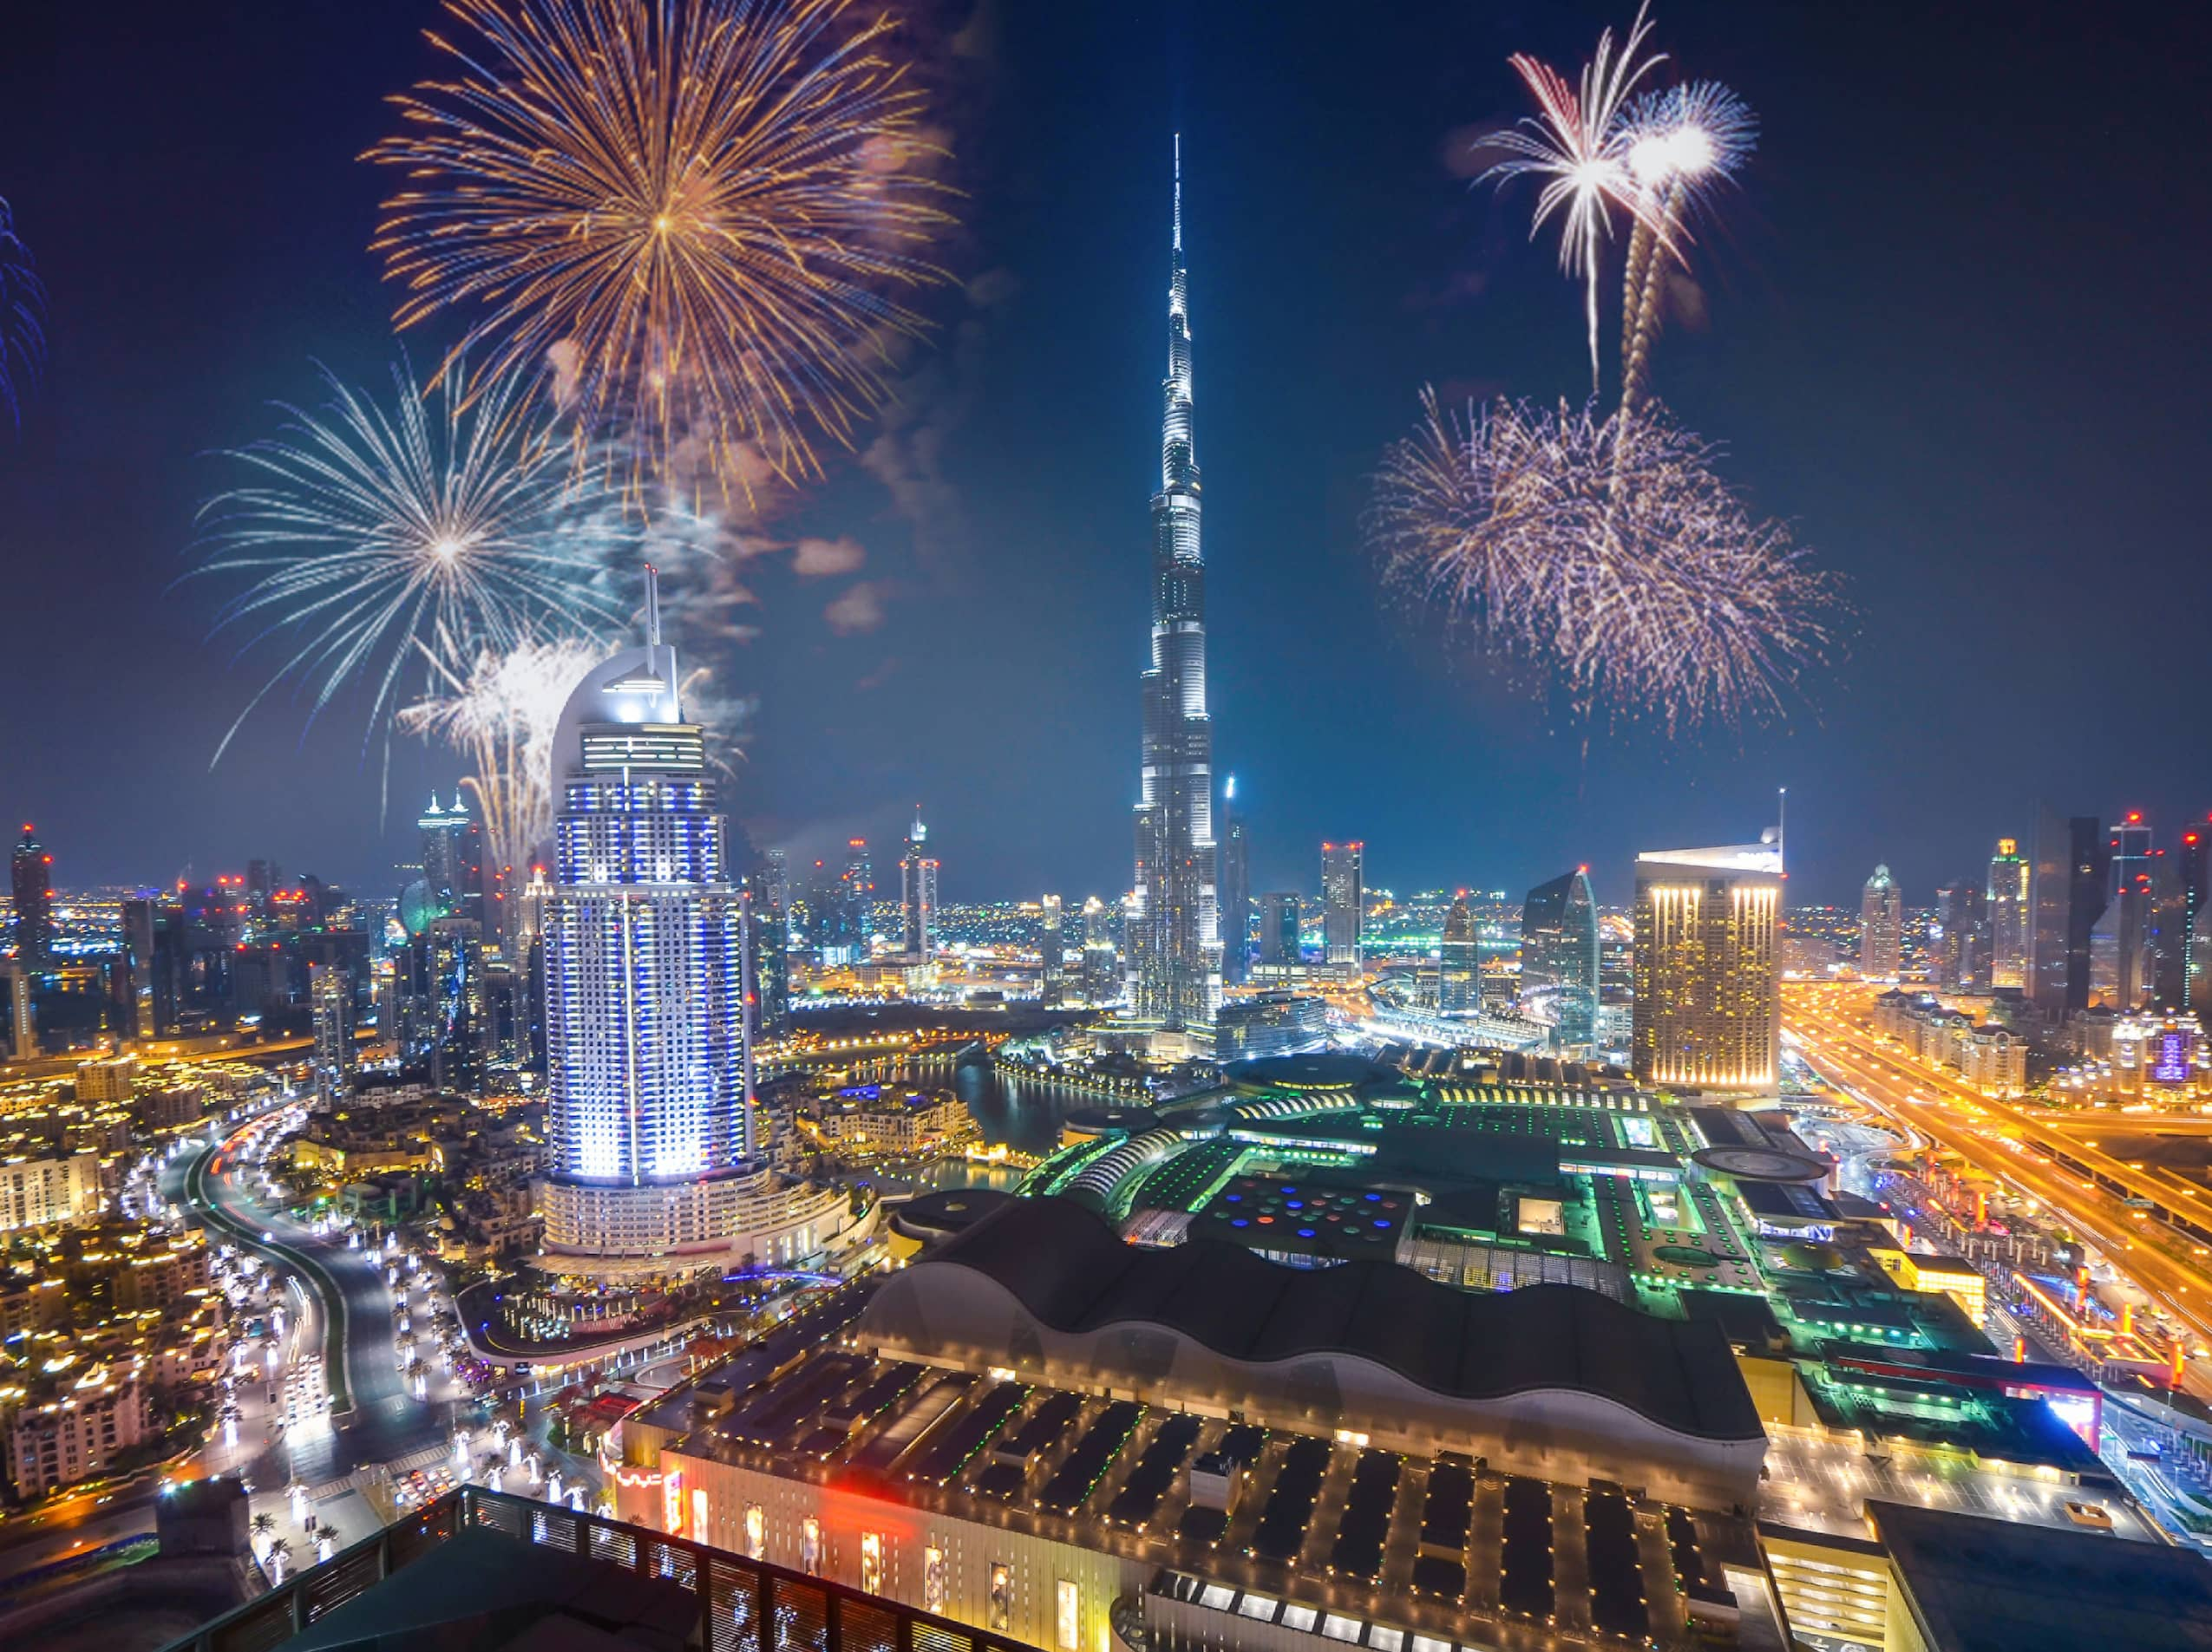 Ring in the new year with fireworks over the Burj Khalifa.